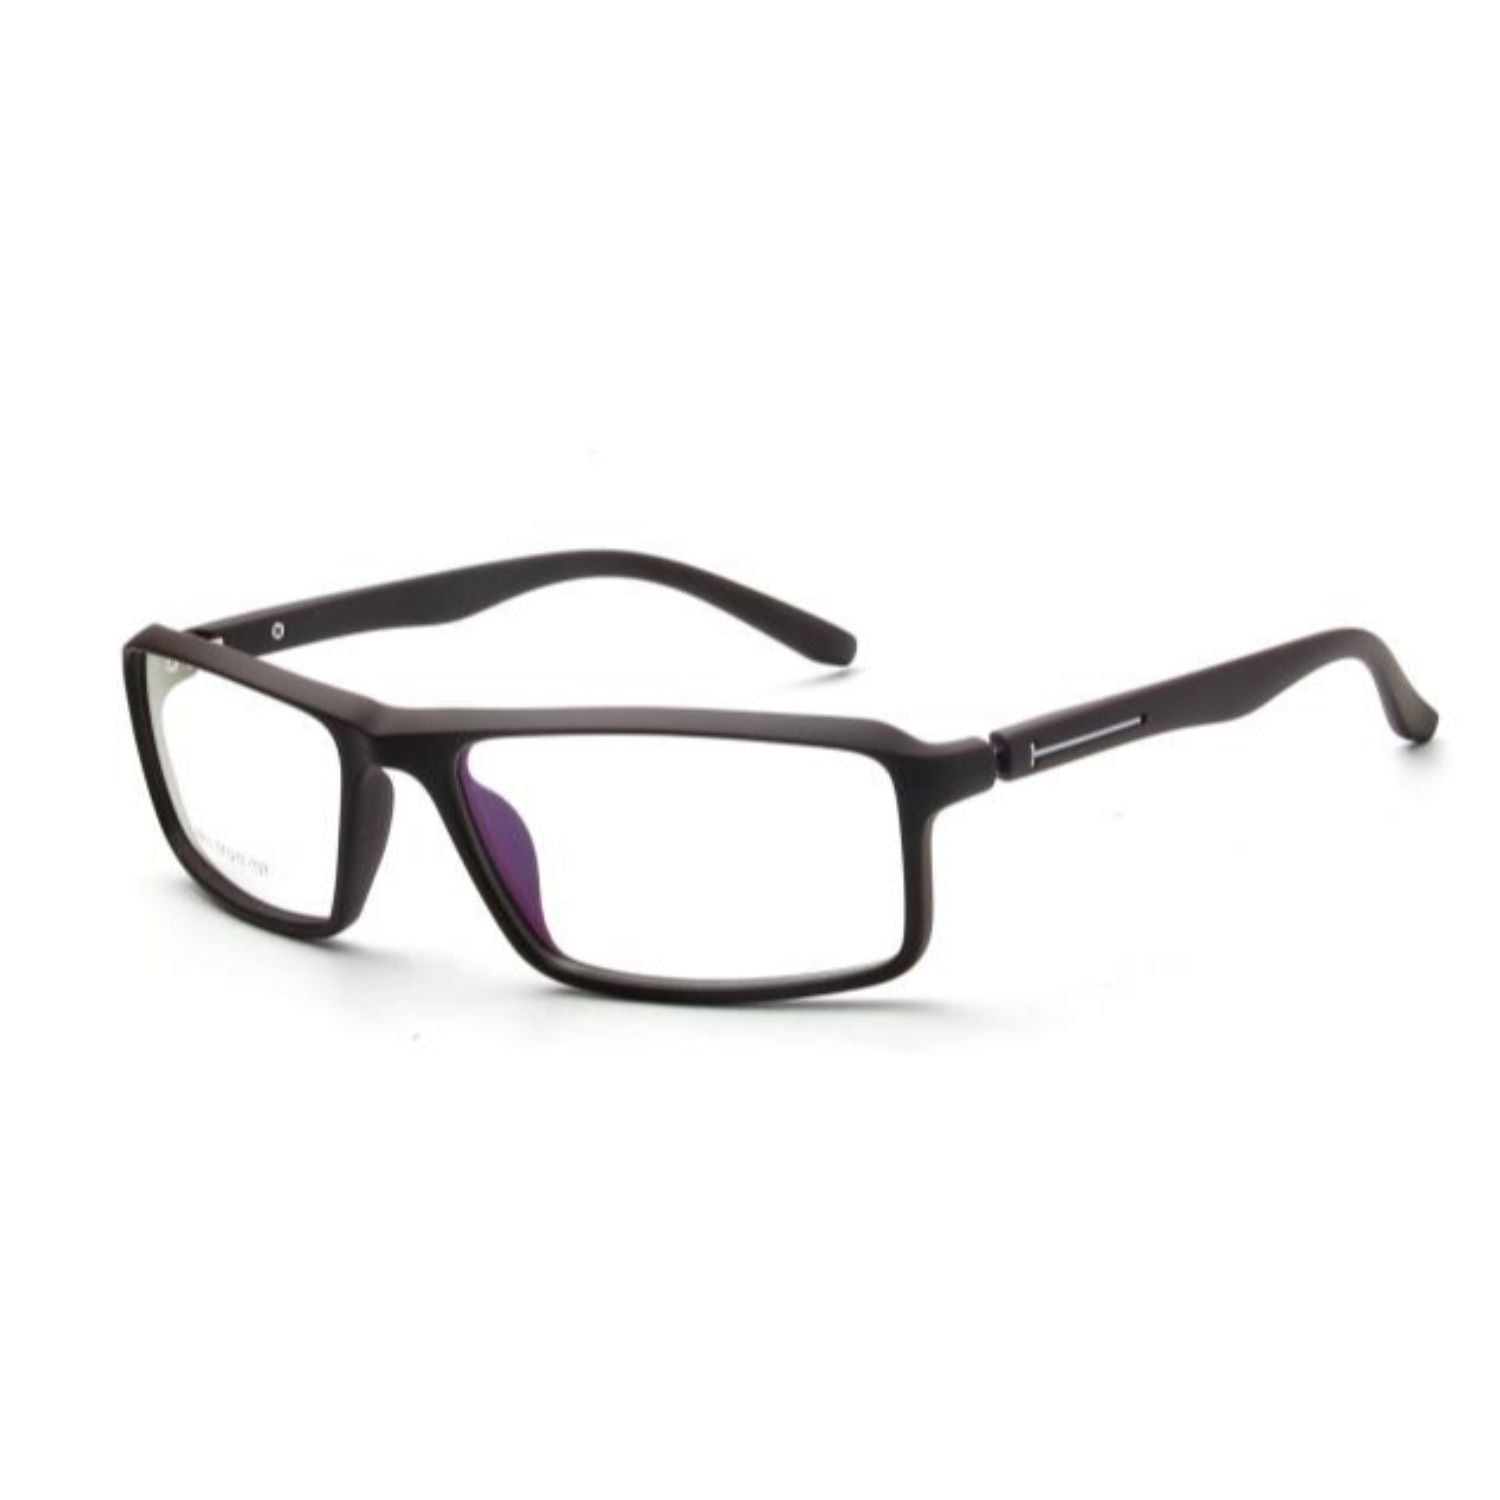 OTR8 - Men Sport Rectangle Eyeglasses - Iris Fashion Inc. | Wholesale Sunglasses and Glasses